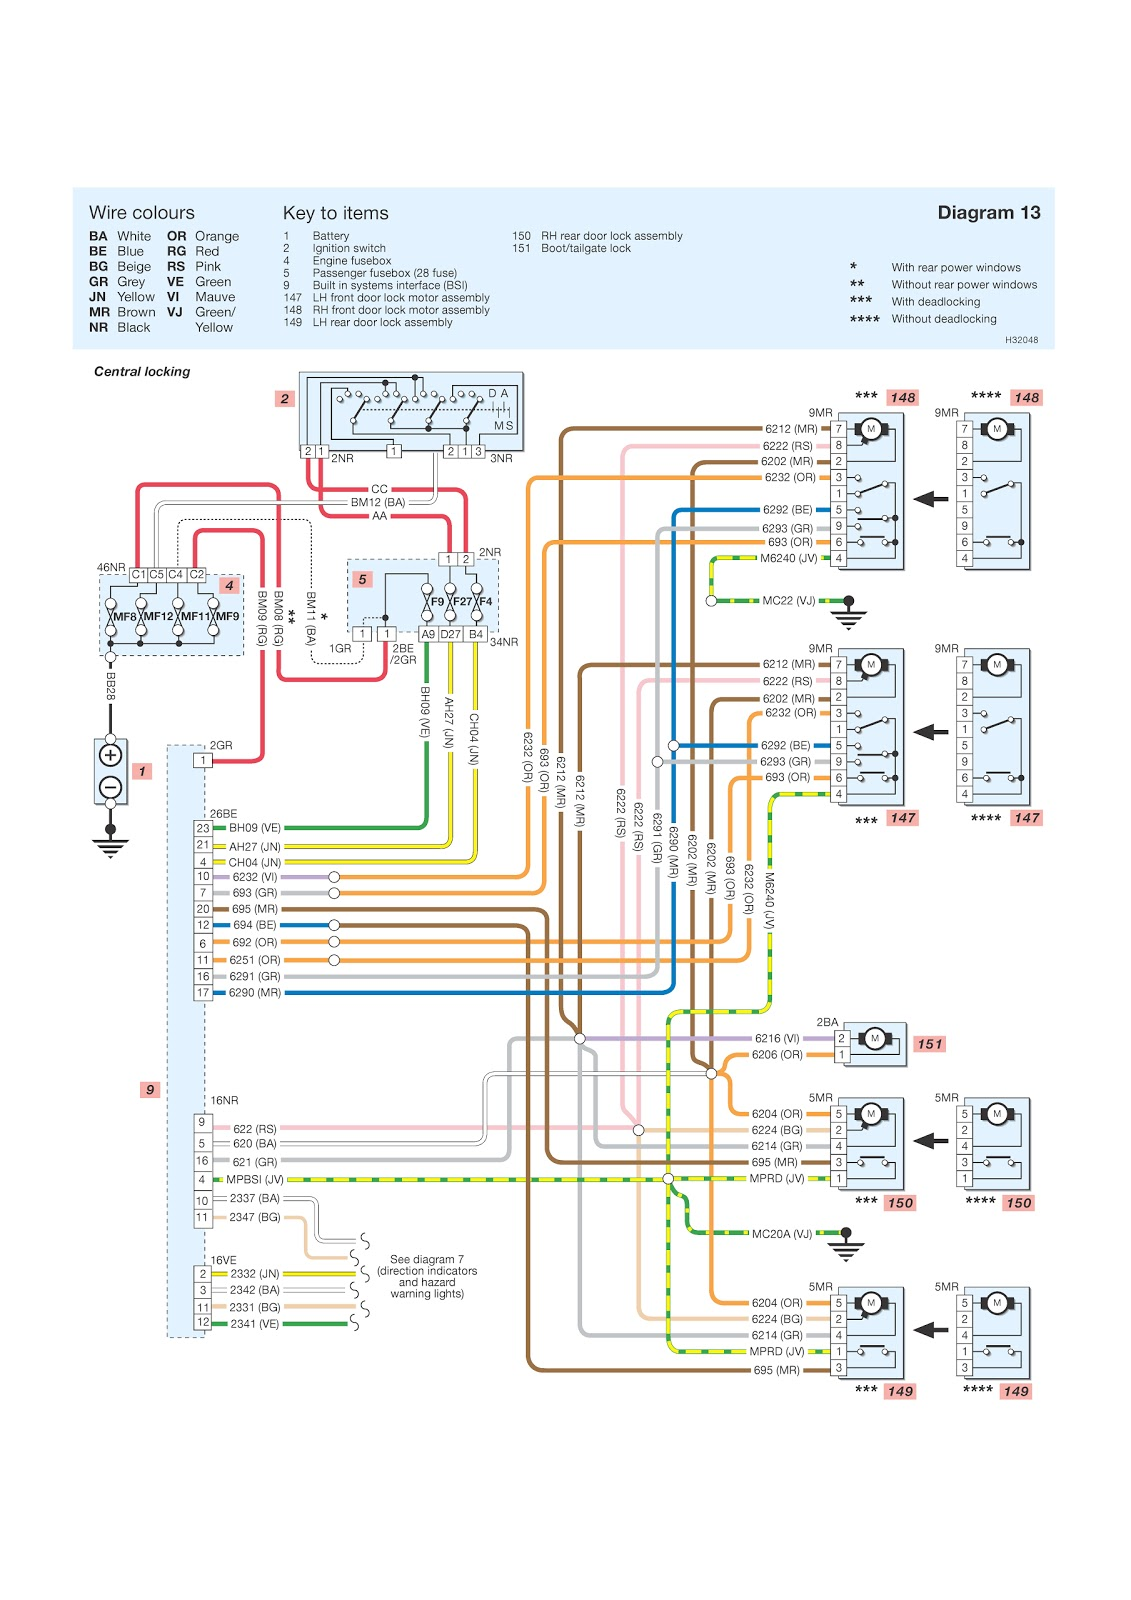 peugeot wiring schematics peugeot 206 wiring diagrams central locking | schematic ... #1